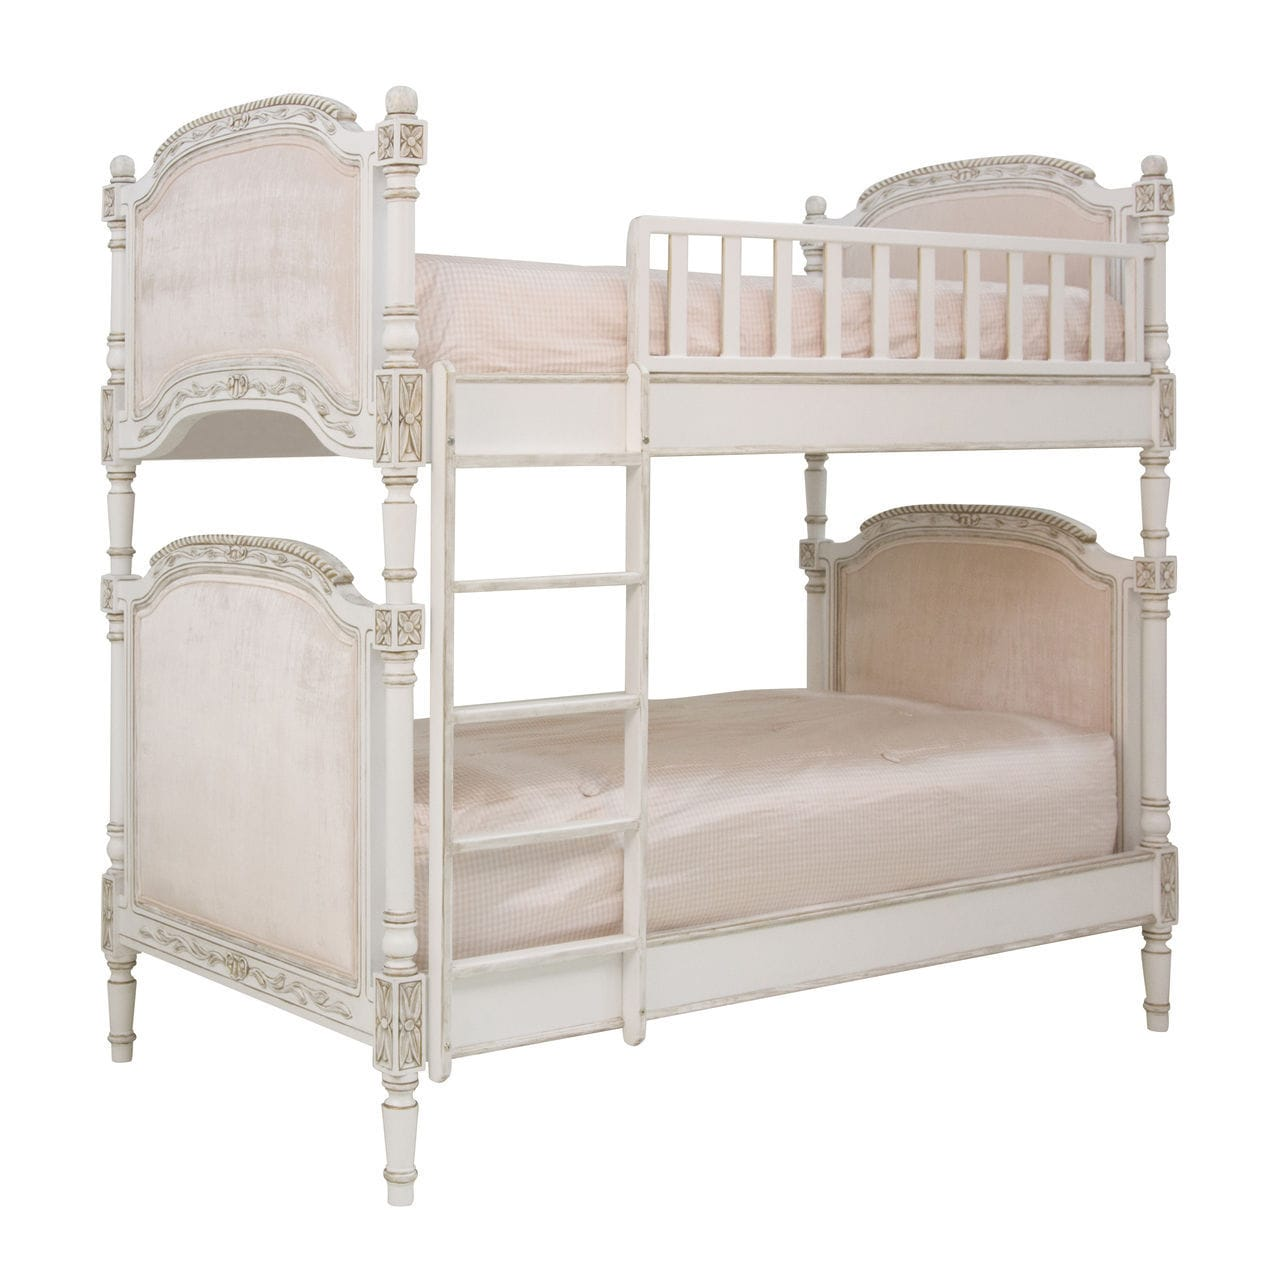 Bunk Bed Josephine Afk Single Traditional Upholstered